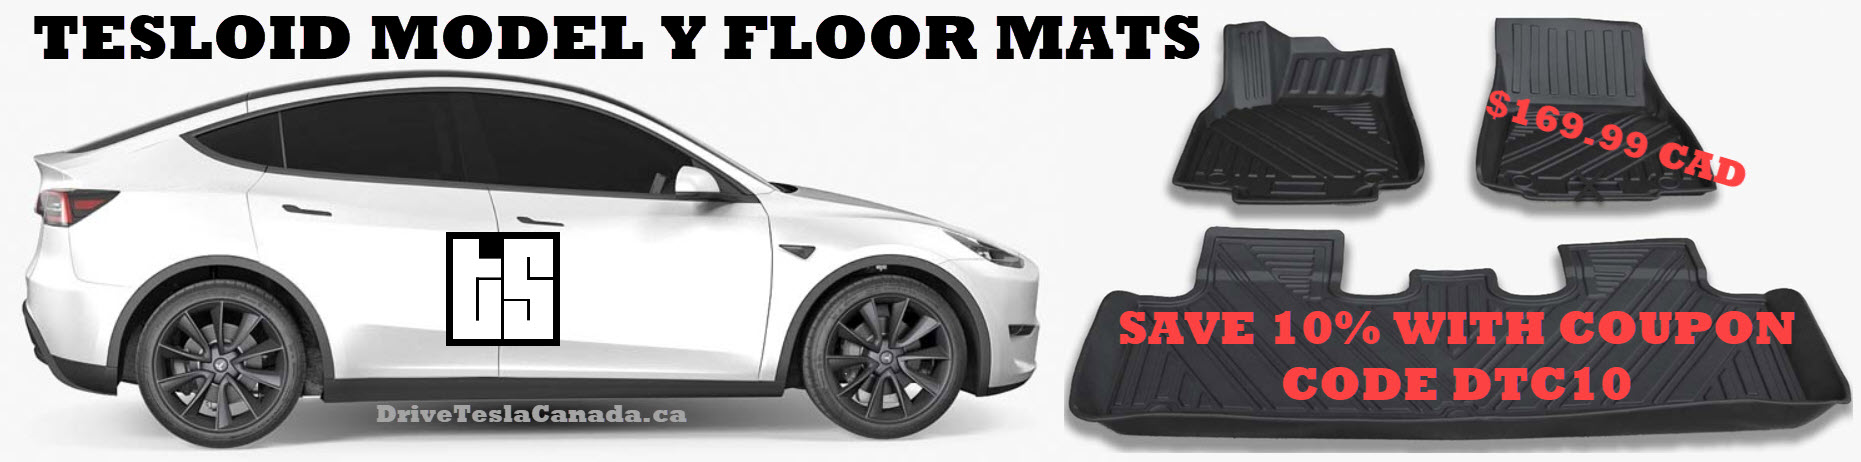 Tesloid Model Y floor mats with coupon code